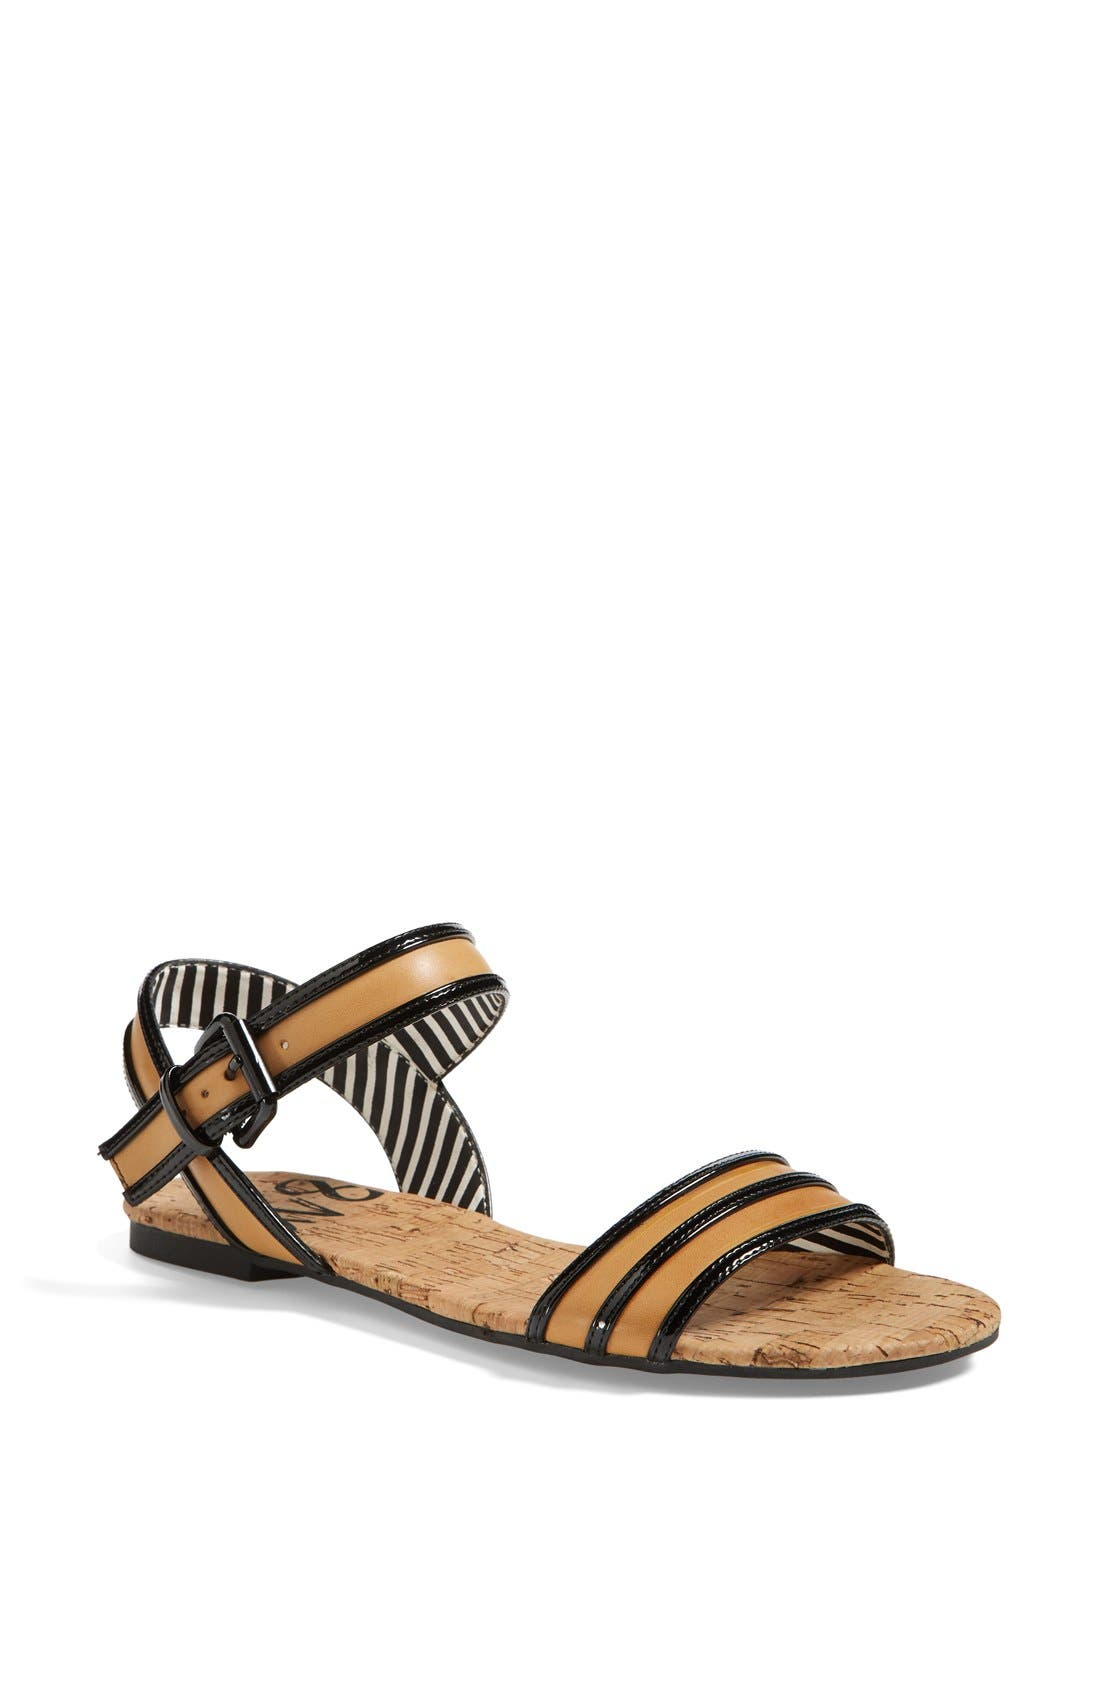 Alternate Image 1 Selected - DV8 by Dolce Vita 'Andra' Sandal